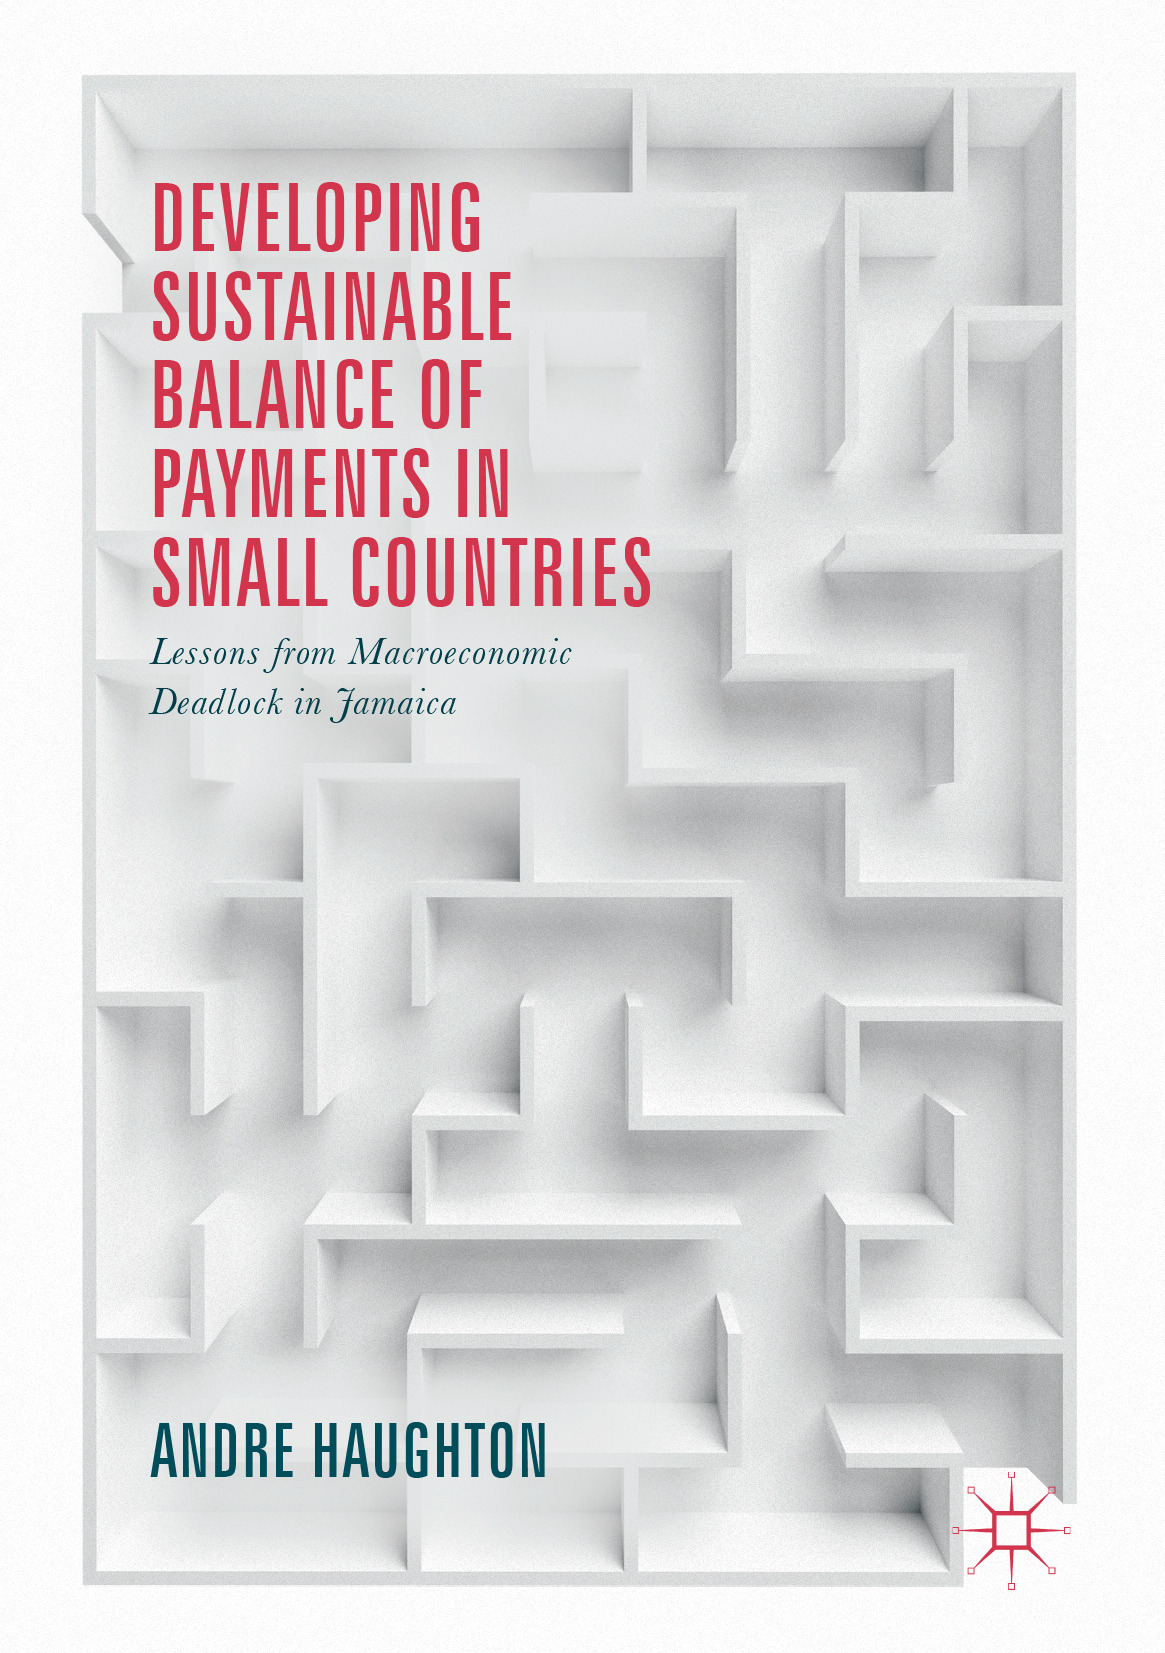 Haughton, Andre - Developing Sustainable Balance of Payments in Small Countries, ebook